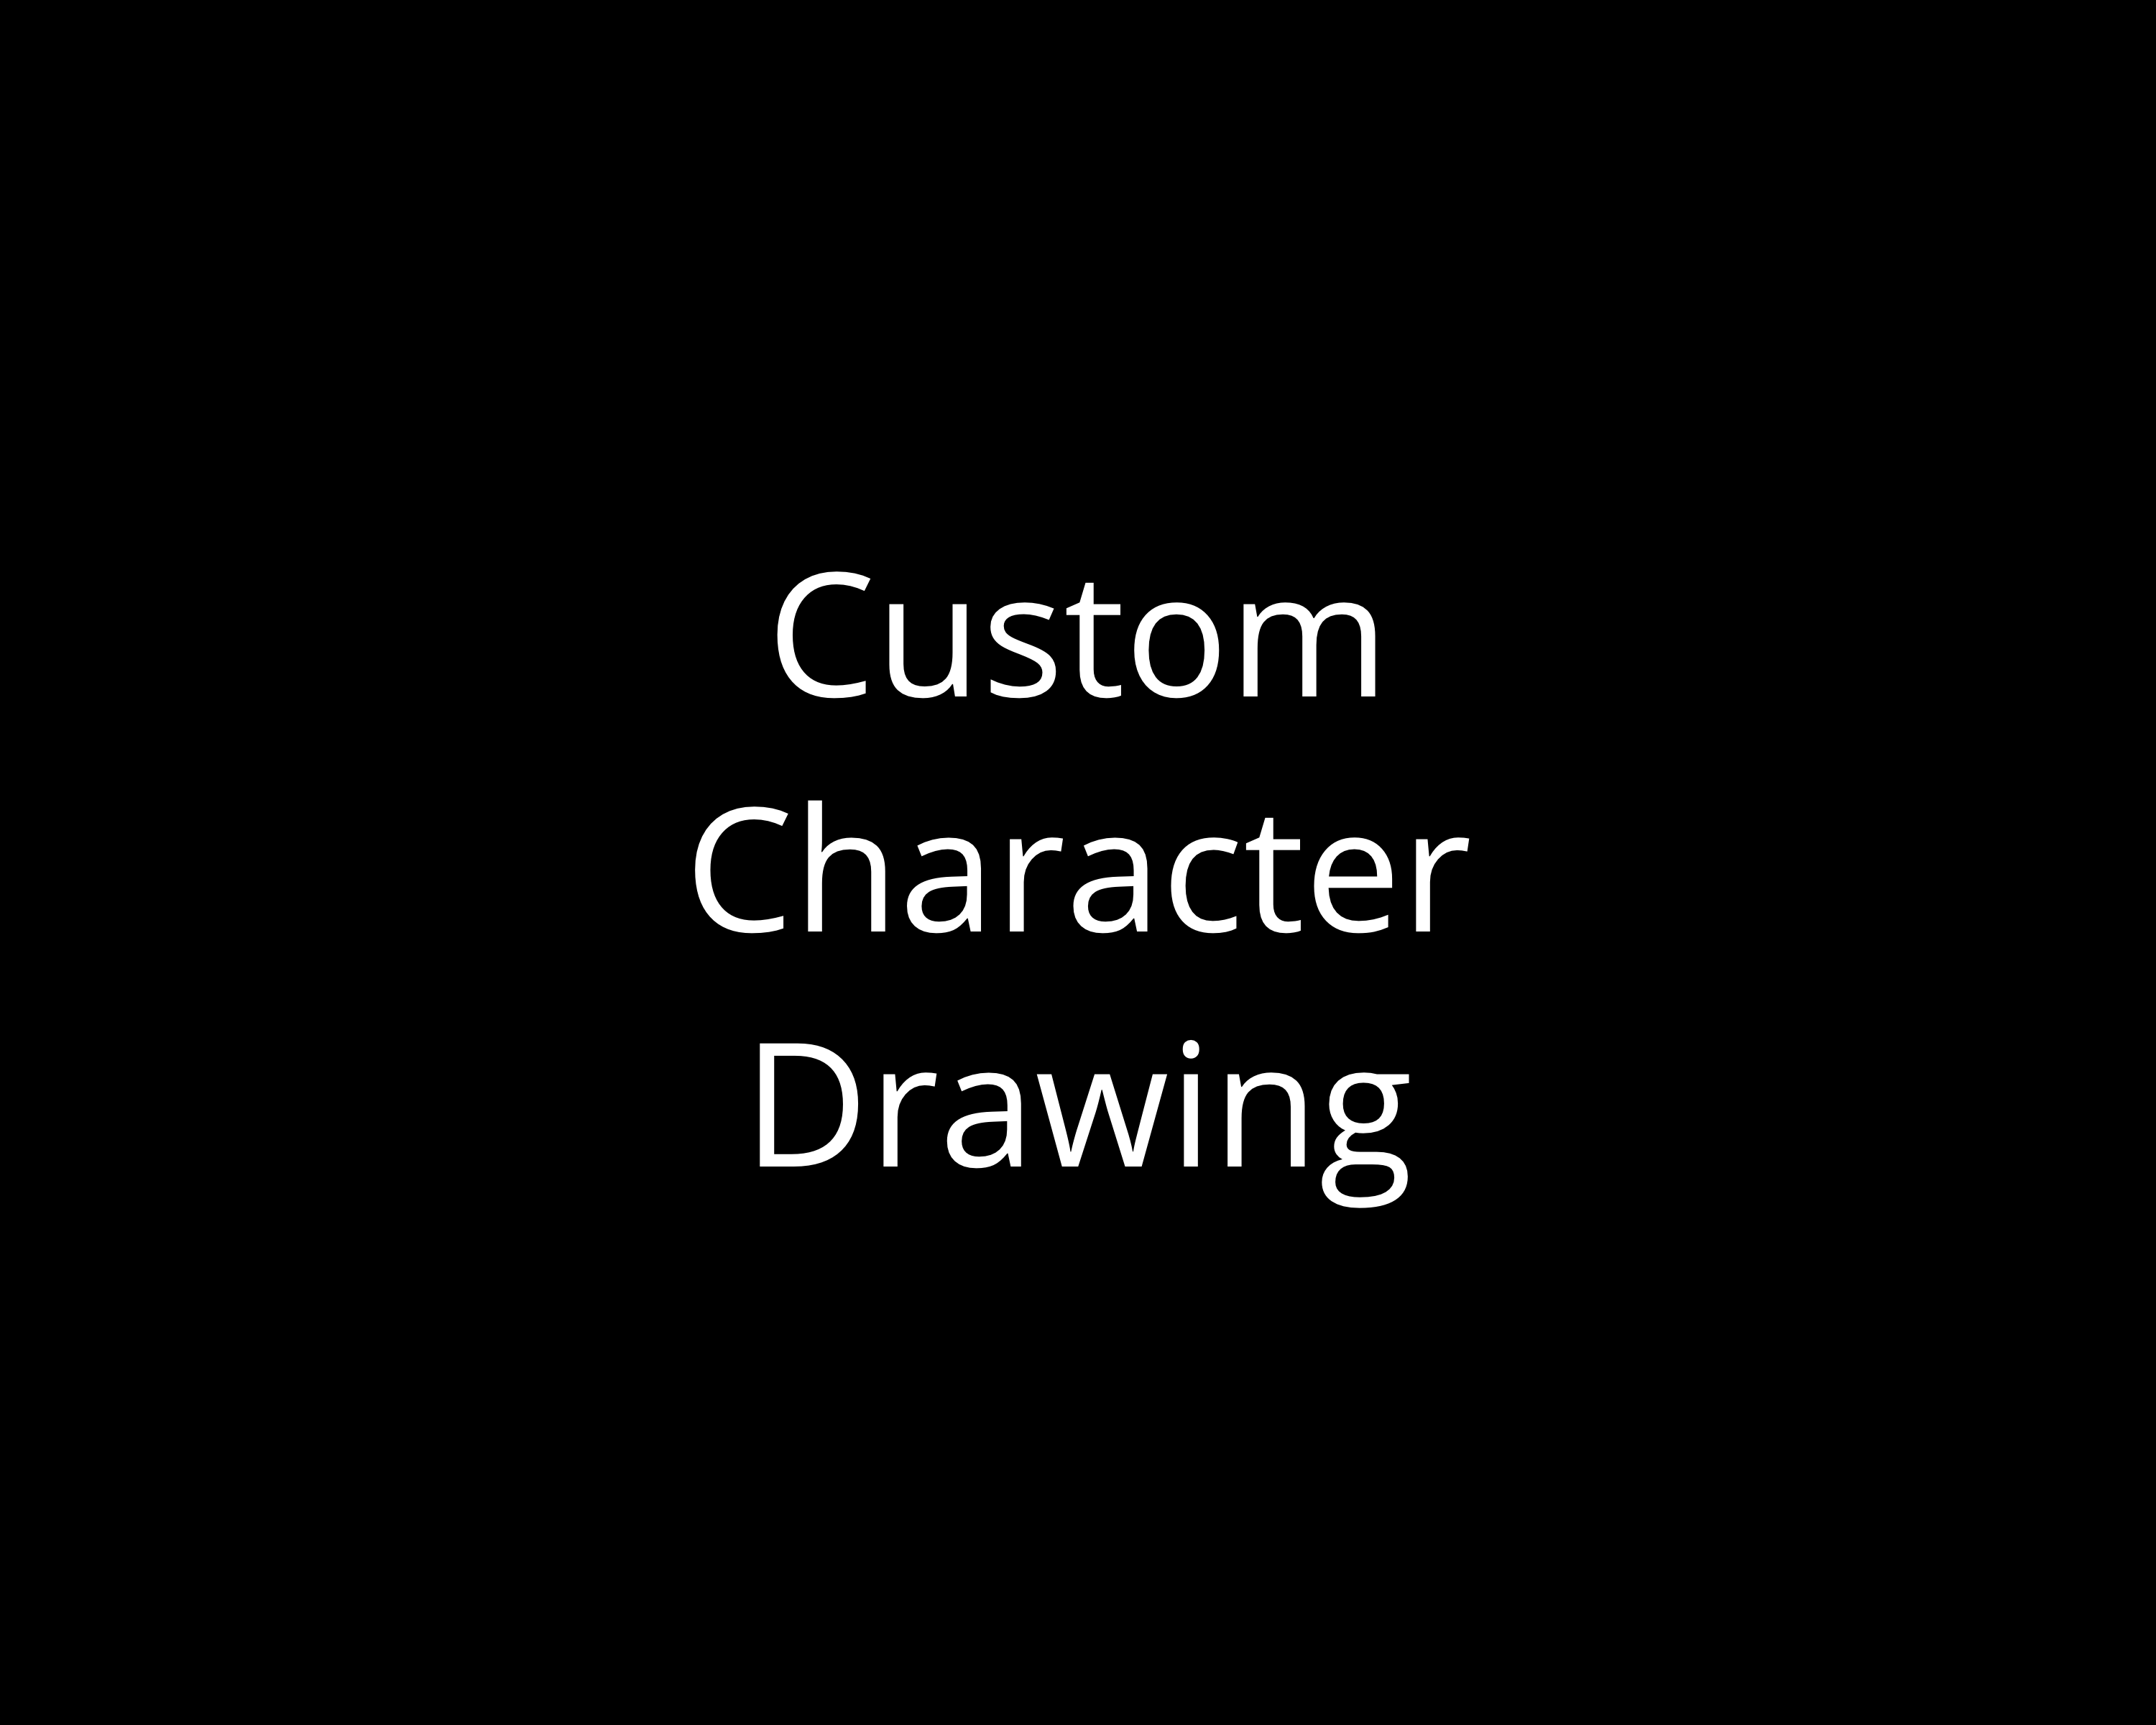 Custom Character Drawing with Optional Caption